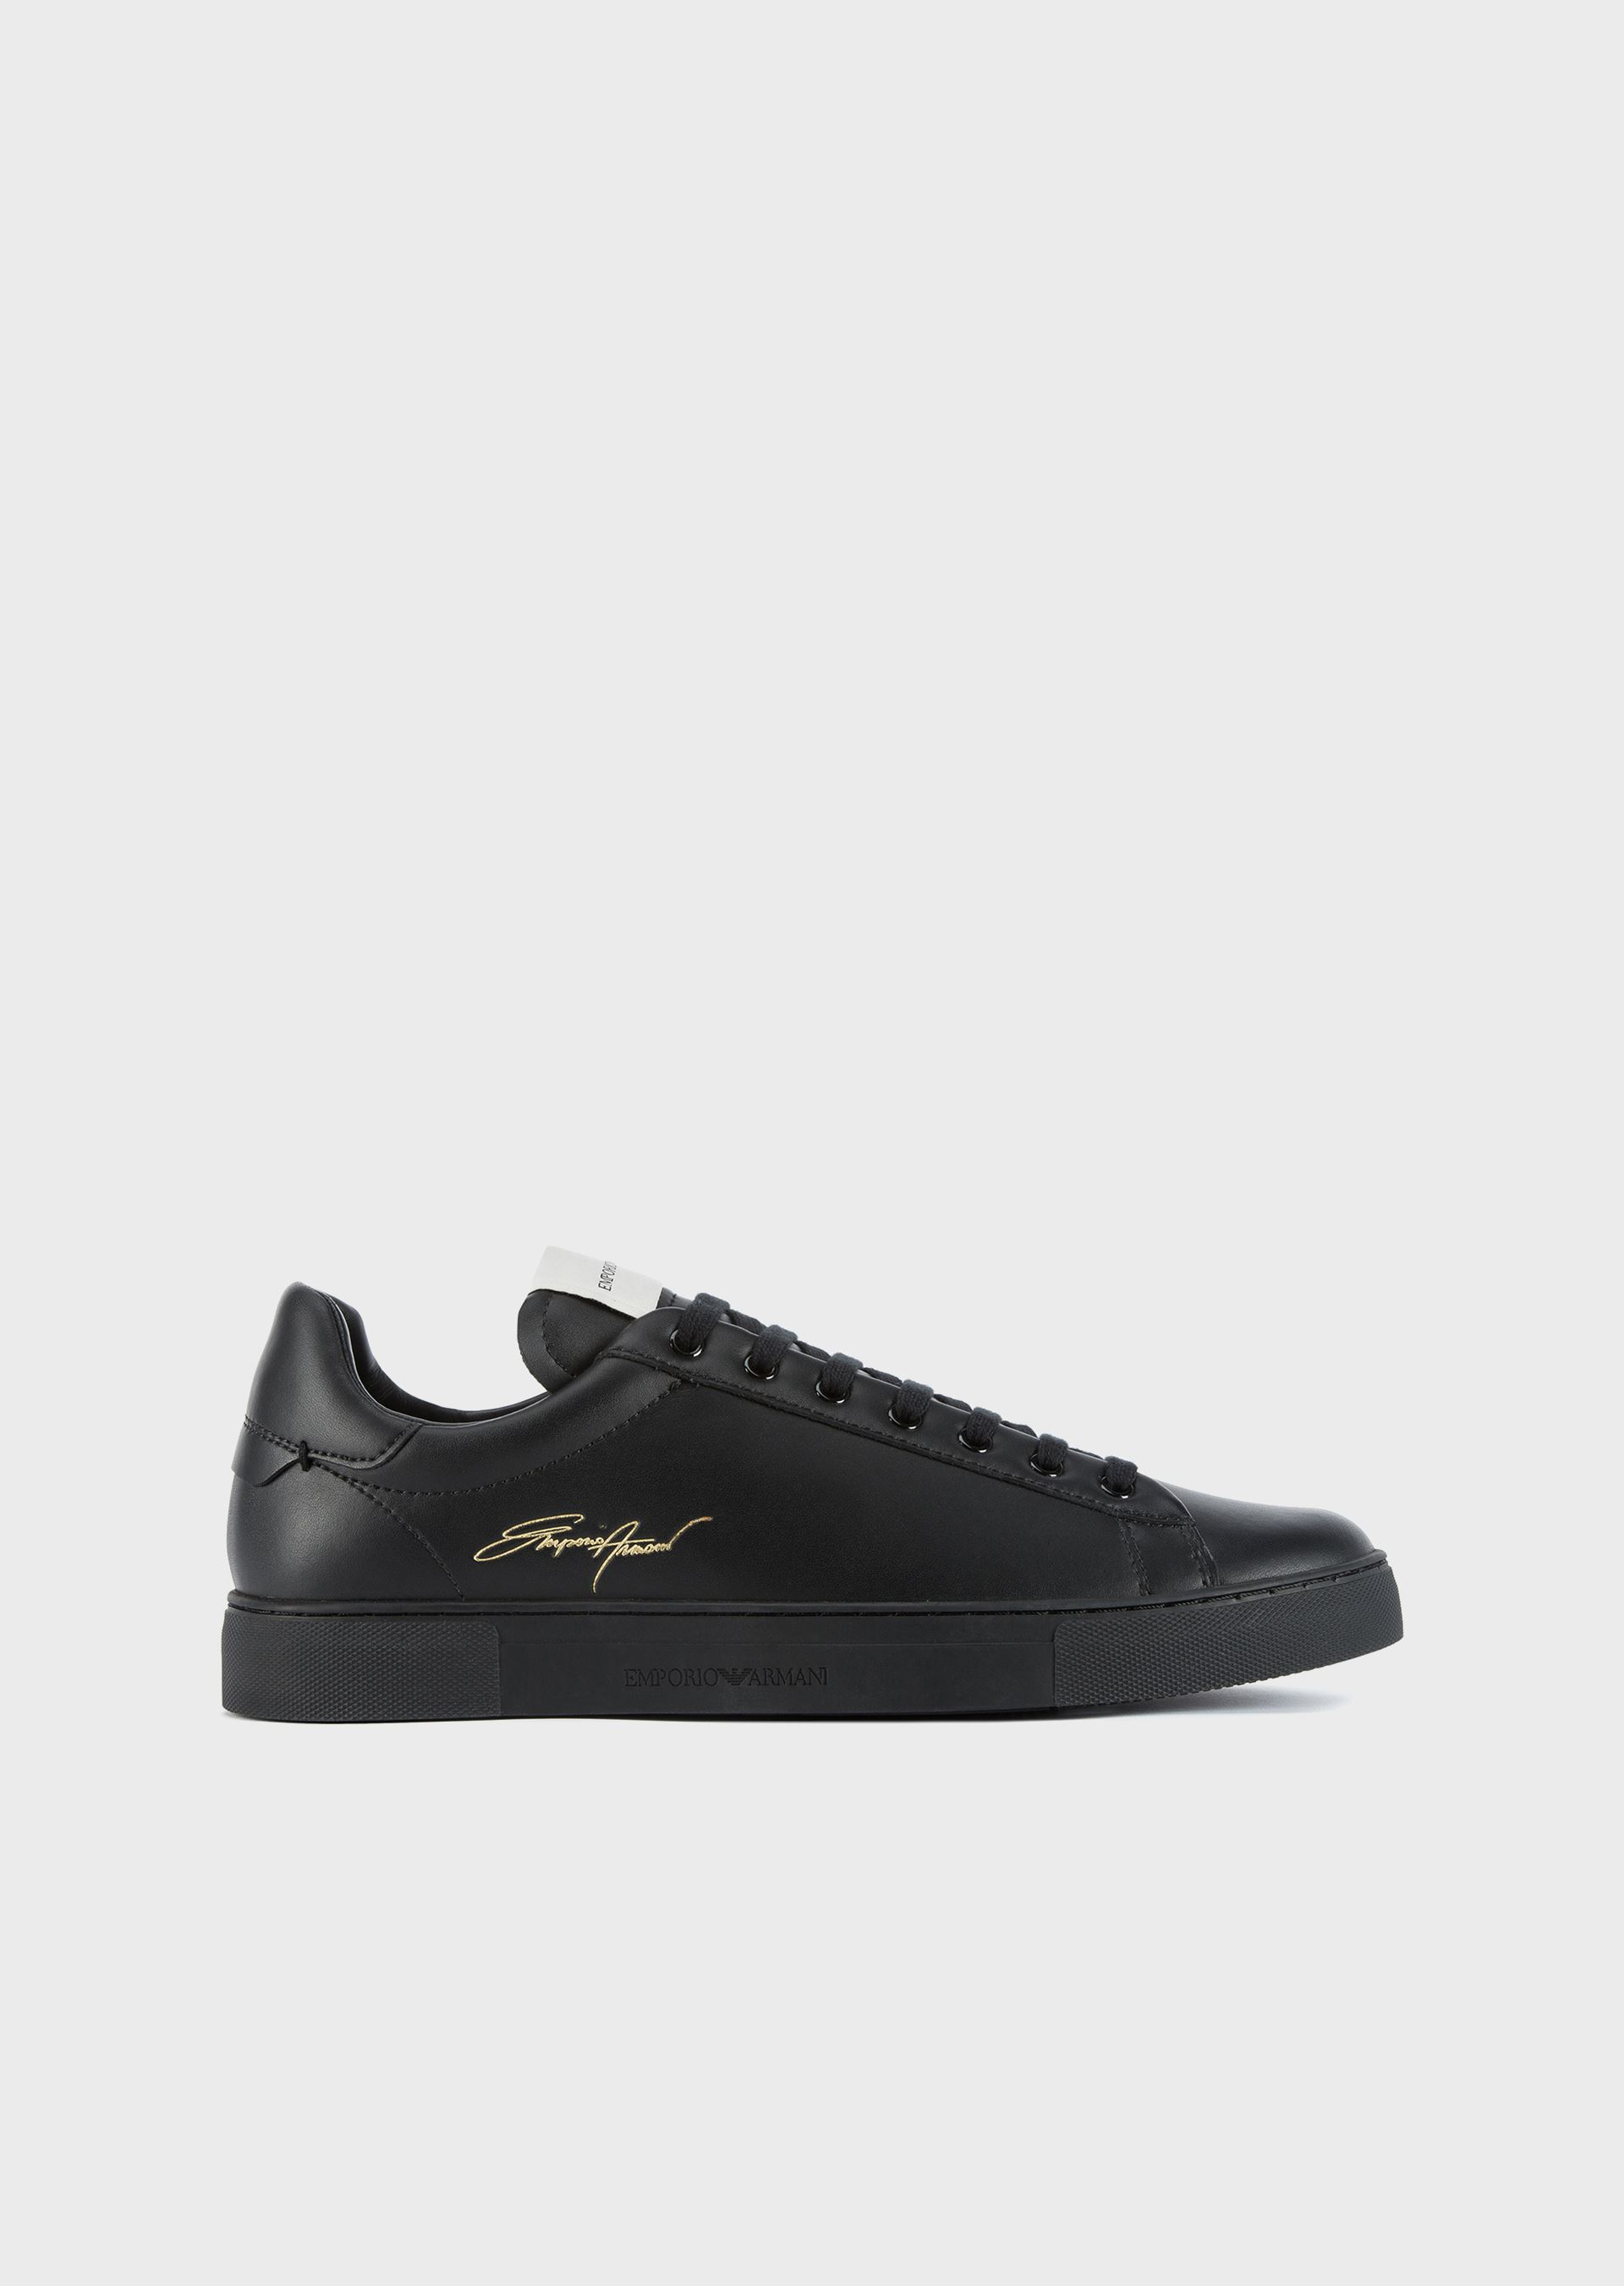 EMPORIO ARMANI Leather sneakers with gold signature logo